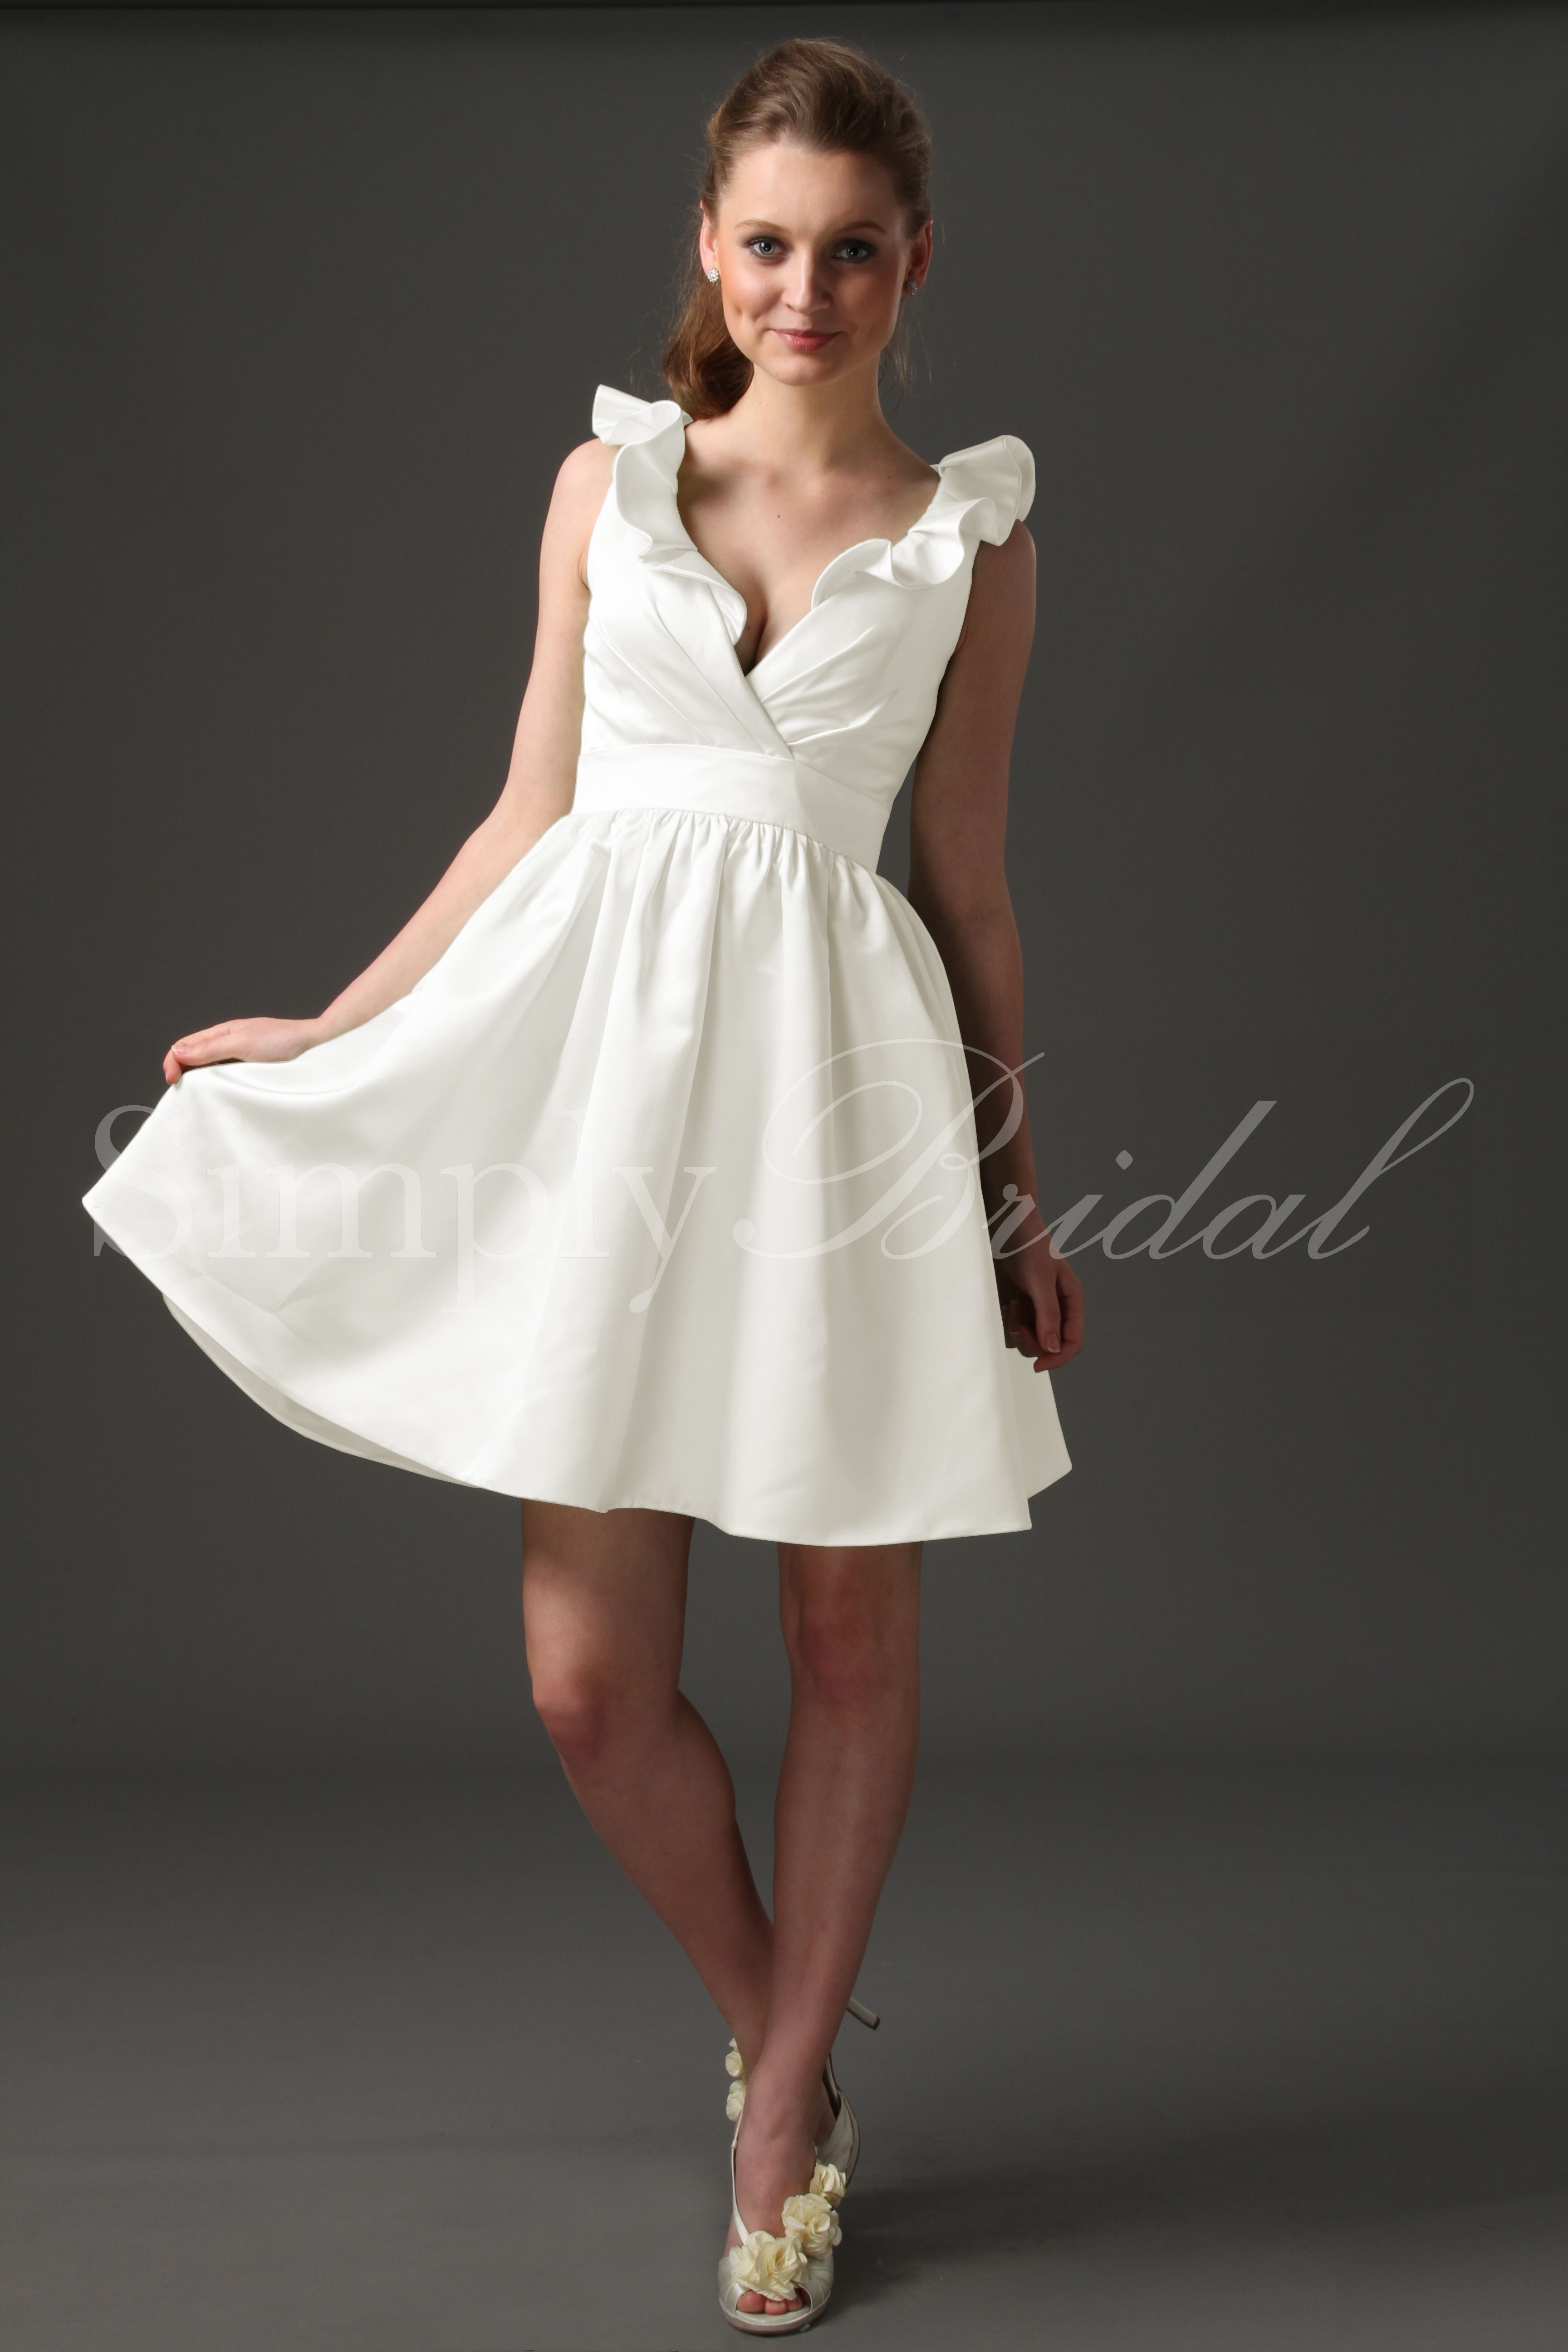 for those brides of mine looking for a white dress for bach parties bridal showers or rehearsal dinners